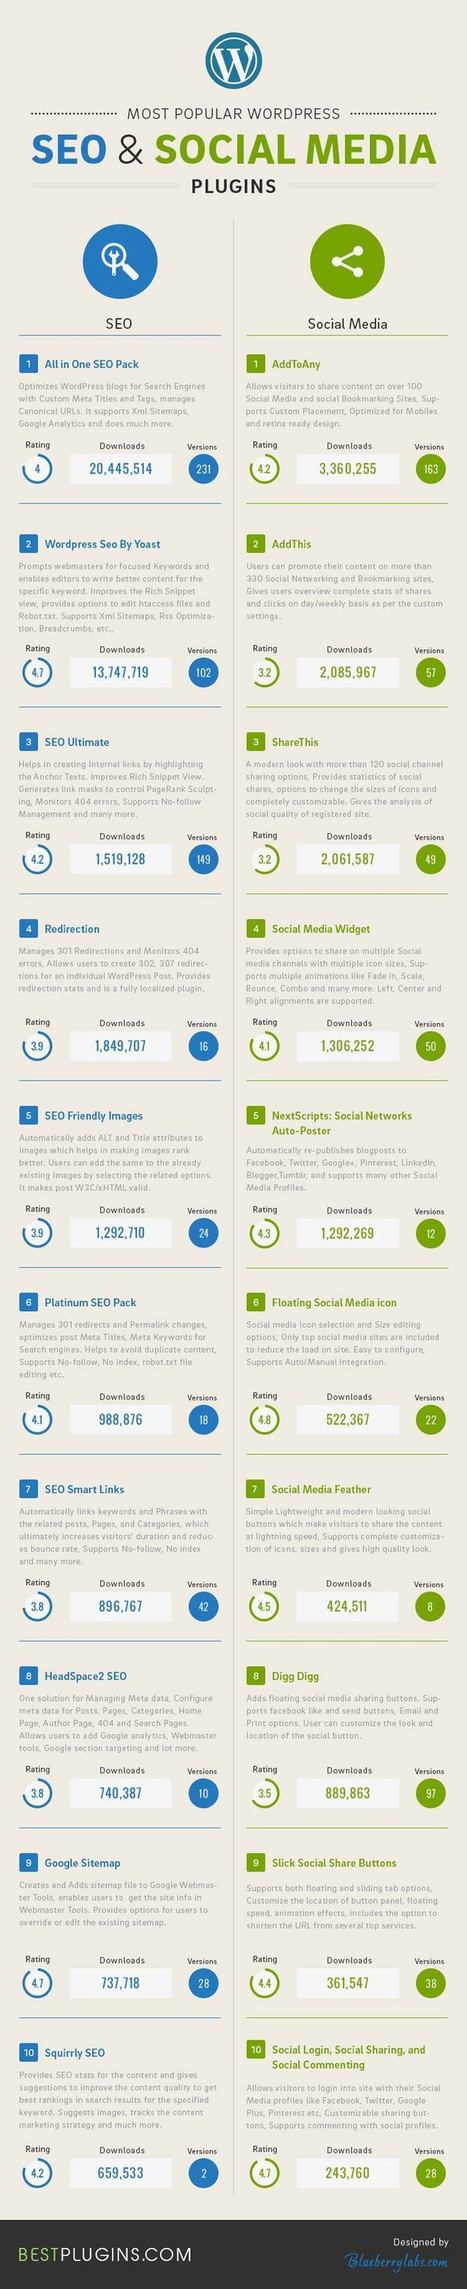 Most popular WordPress SEO and Social Media Plugins | WordPress Google SEO and Social Media | Scoop.it